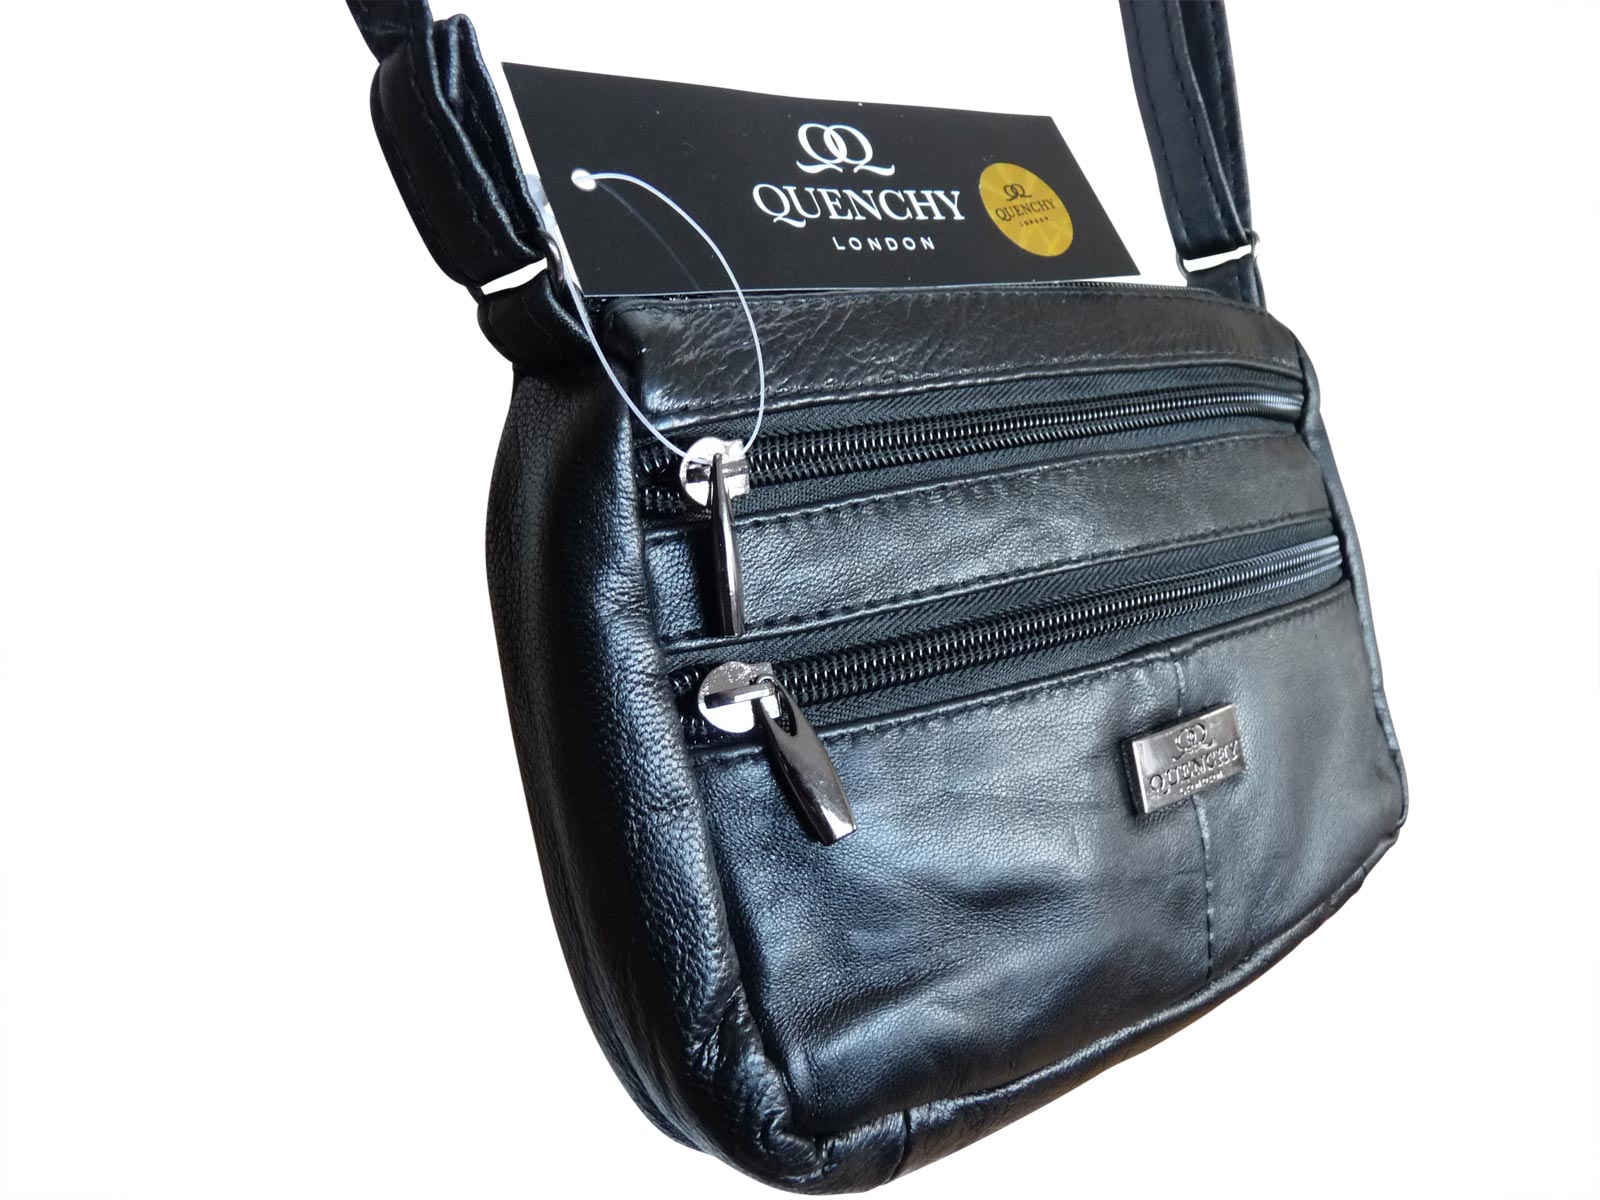 38a9b38dfc Small Leather Shoulder Bag Travel Neck Pouch QL945 - Quenchy London